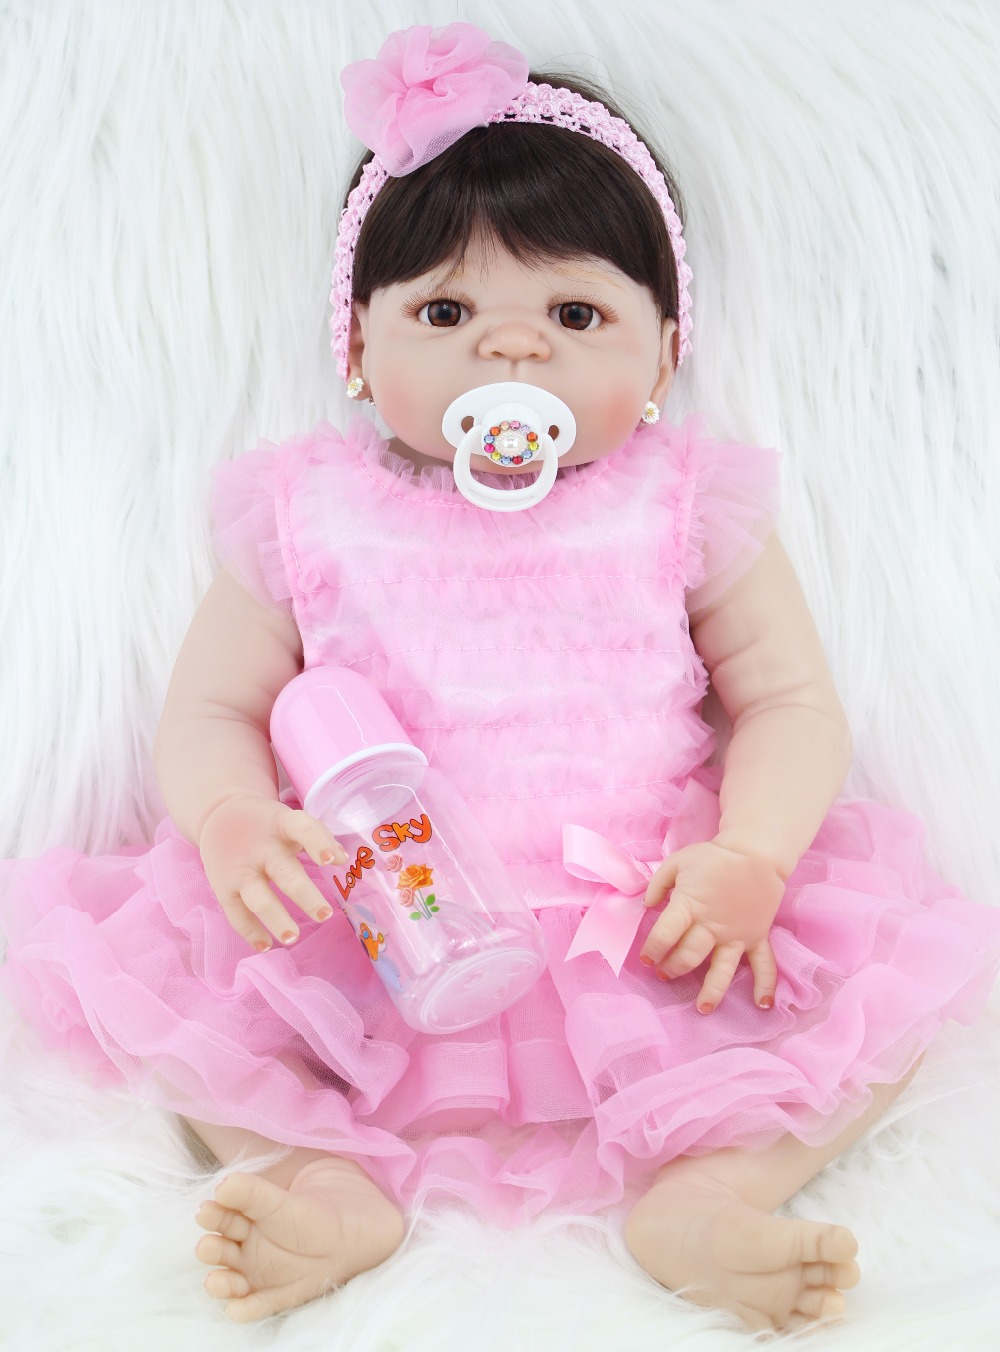 NPKCOLLECTION 55cm Full Silicone Reborn Girl Baby Doll Toys Lifelike Newborn Princess Girls Babies Doll Birthday Gift Present 55cm silicone reborn baby doll toy lifelike newborn toddler princess babies doll with bear girls bonecas birthday gift present